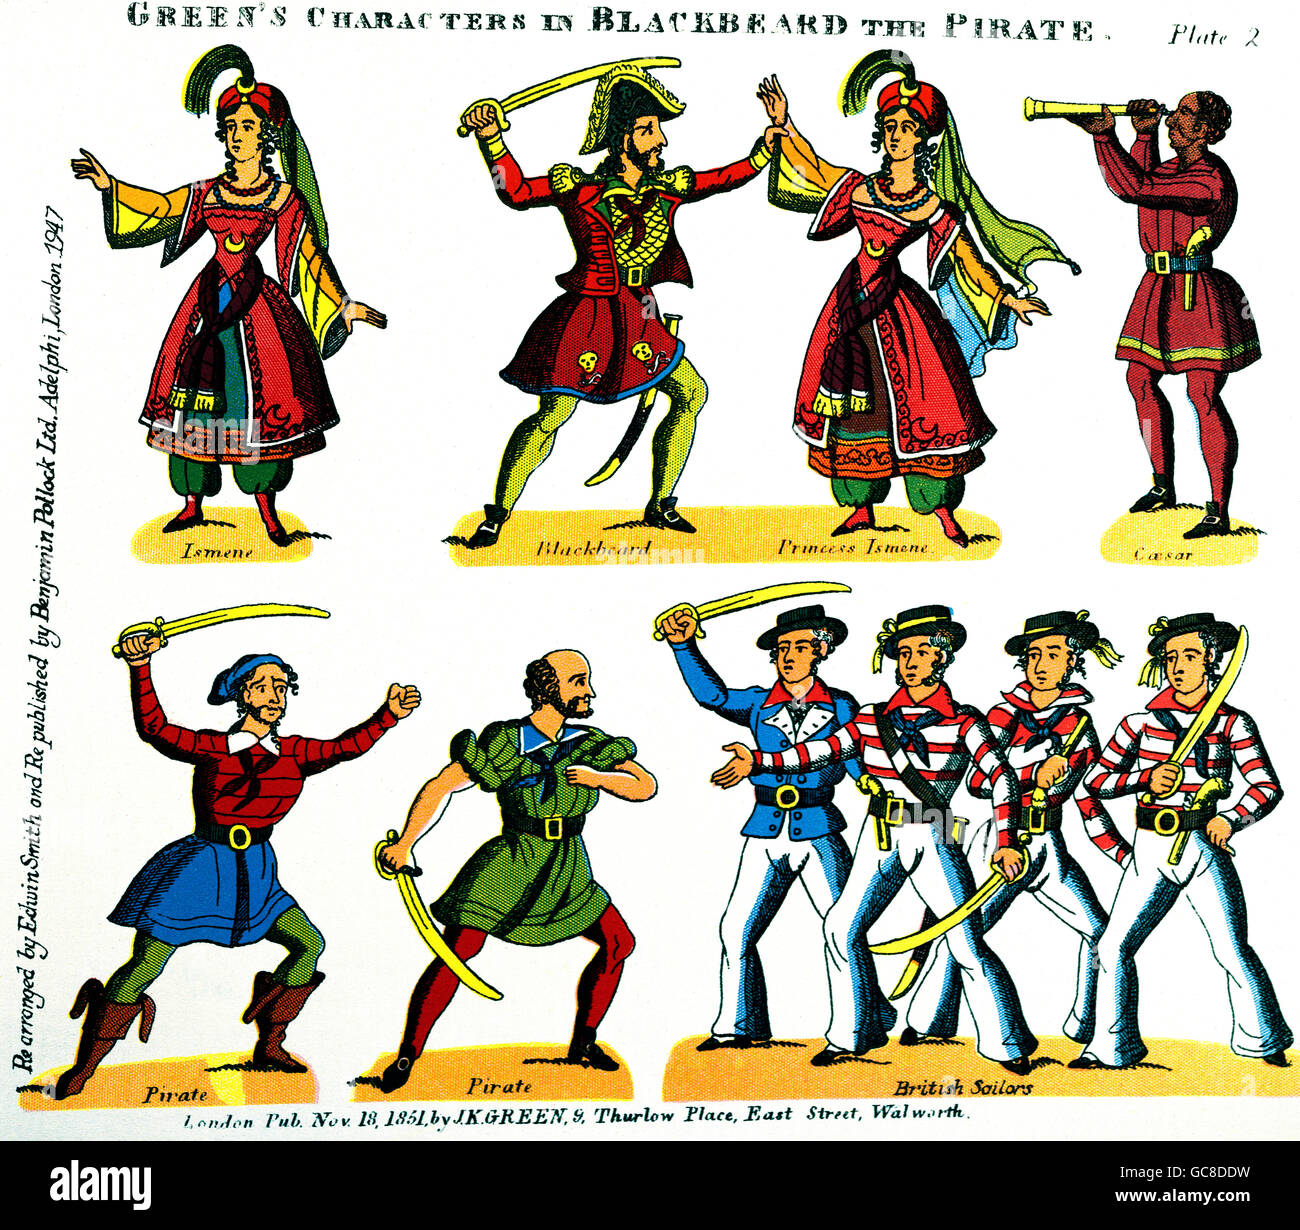 theatre, plays, 'Blackbeard the Pirate or the Jolly Buccaneers', figures, lithograph, J. K. Green, London, - Stock Image